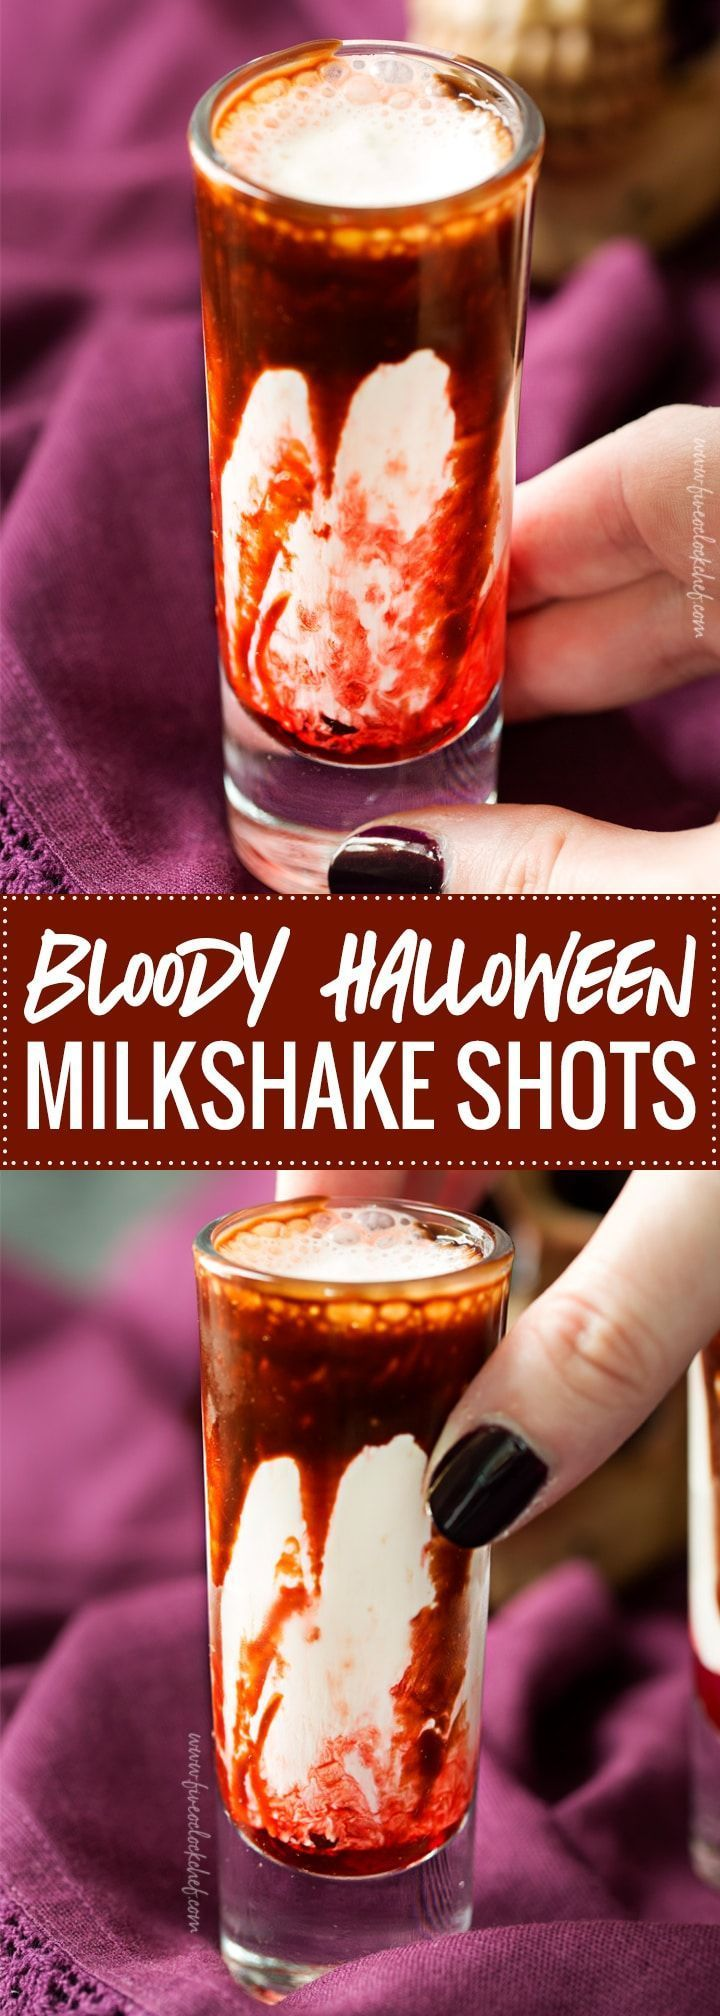 Bloody Milkshake Halloween Shots | Gory and delicious, these vanilla milkshake shots take just 5 ingredients to make, and are perfect for a Halloween party! | https://www.the5oclockchef.com | #shots #milkshake #halloween #party